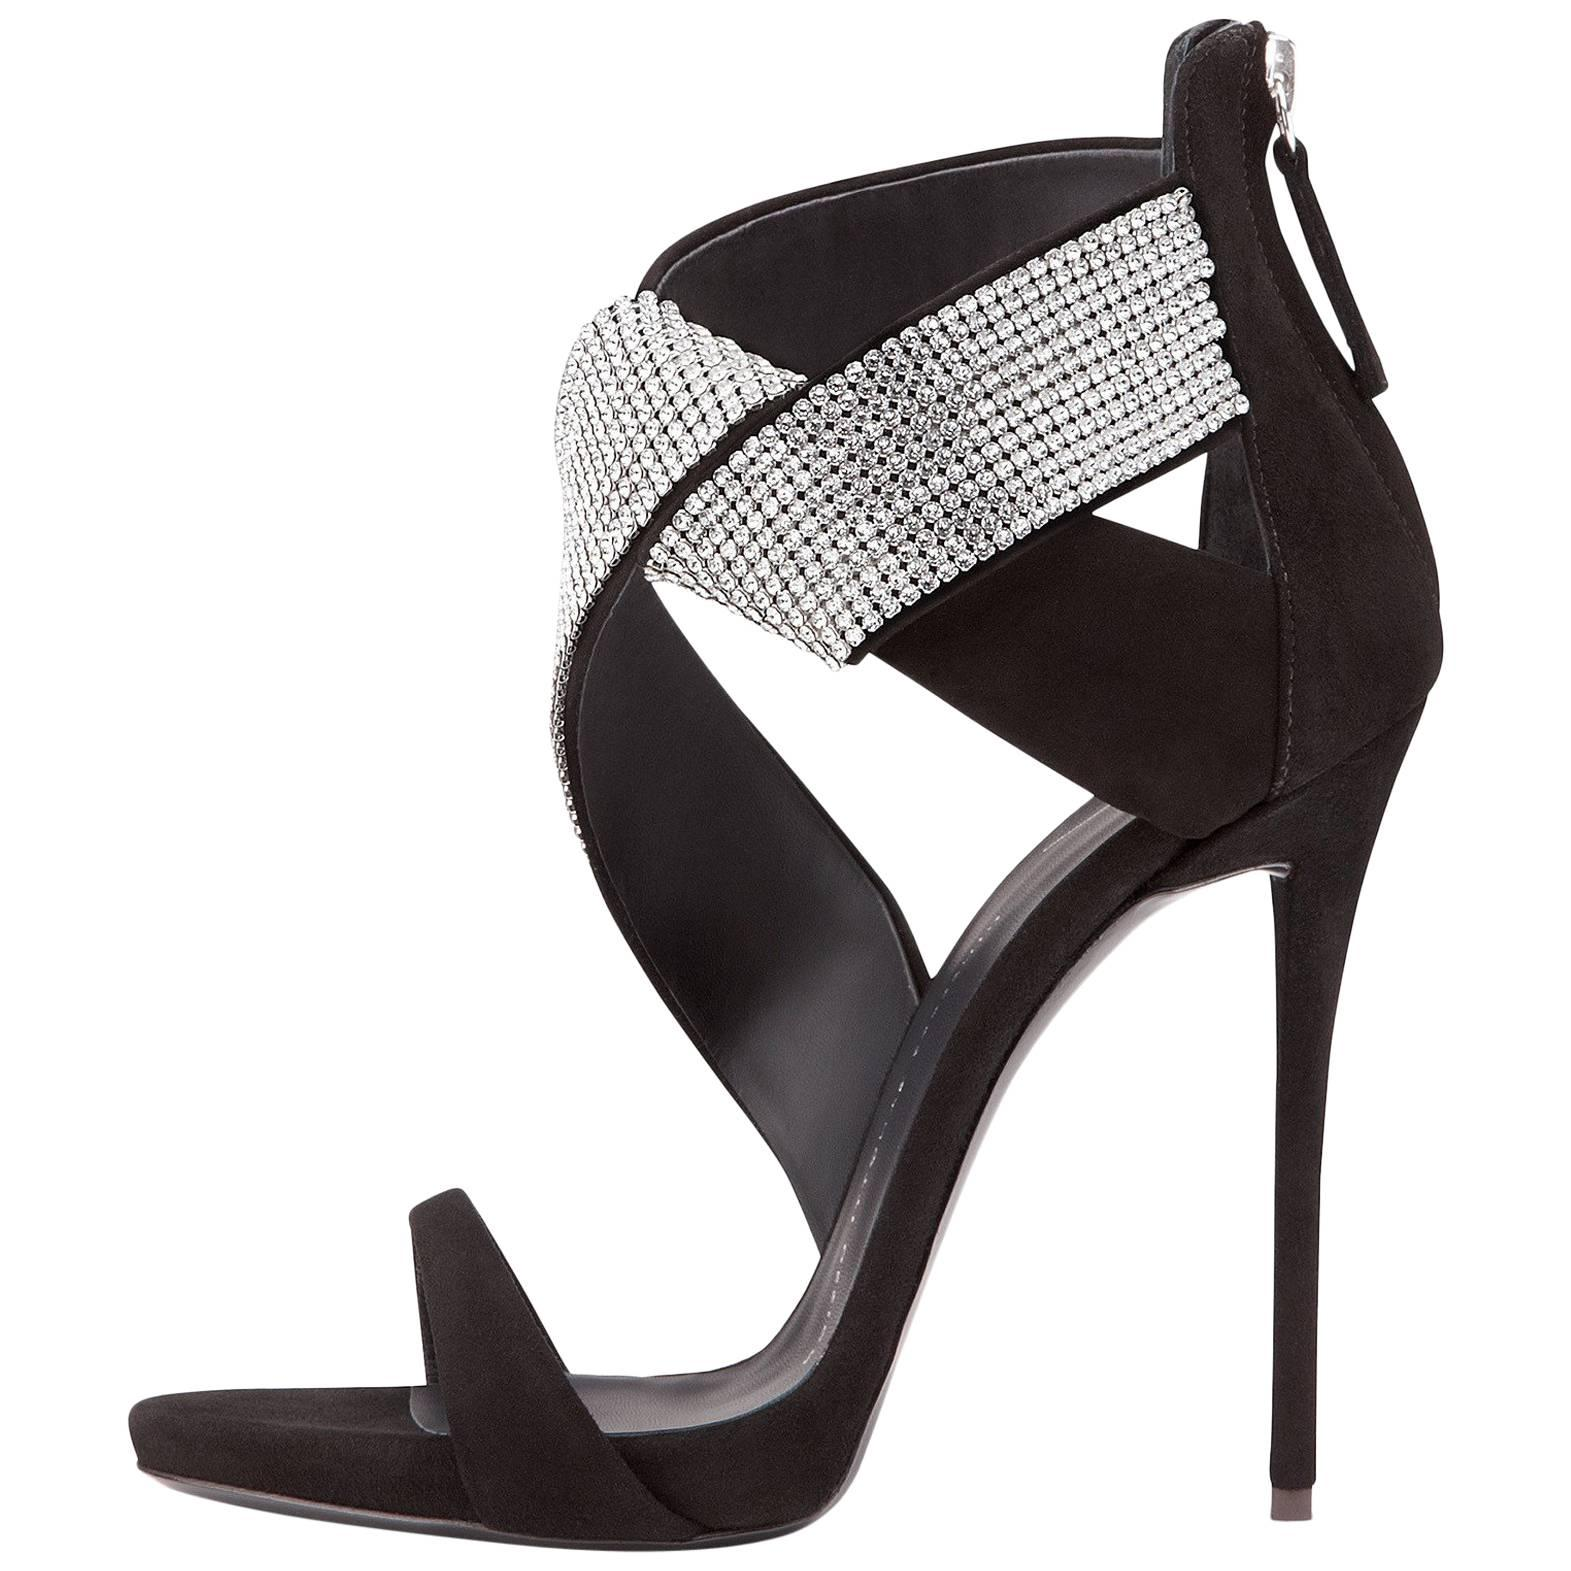 Giuseppe Zanotti Black Suede Crystal Wrap Around Sandals Evening Heels in Box